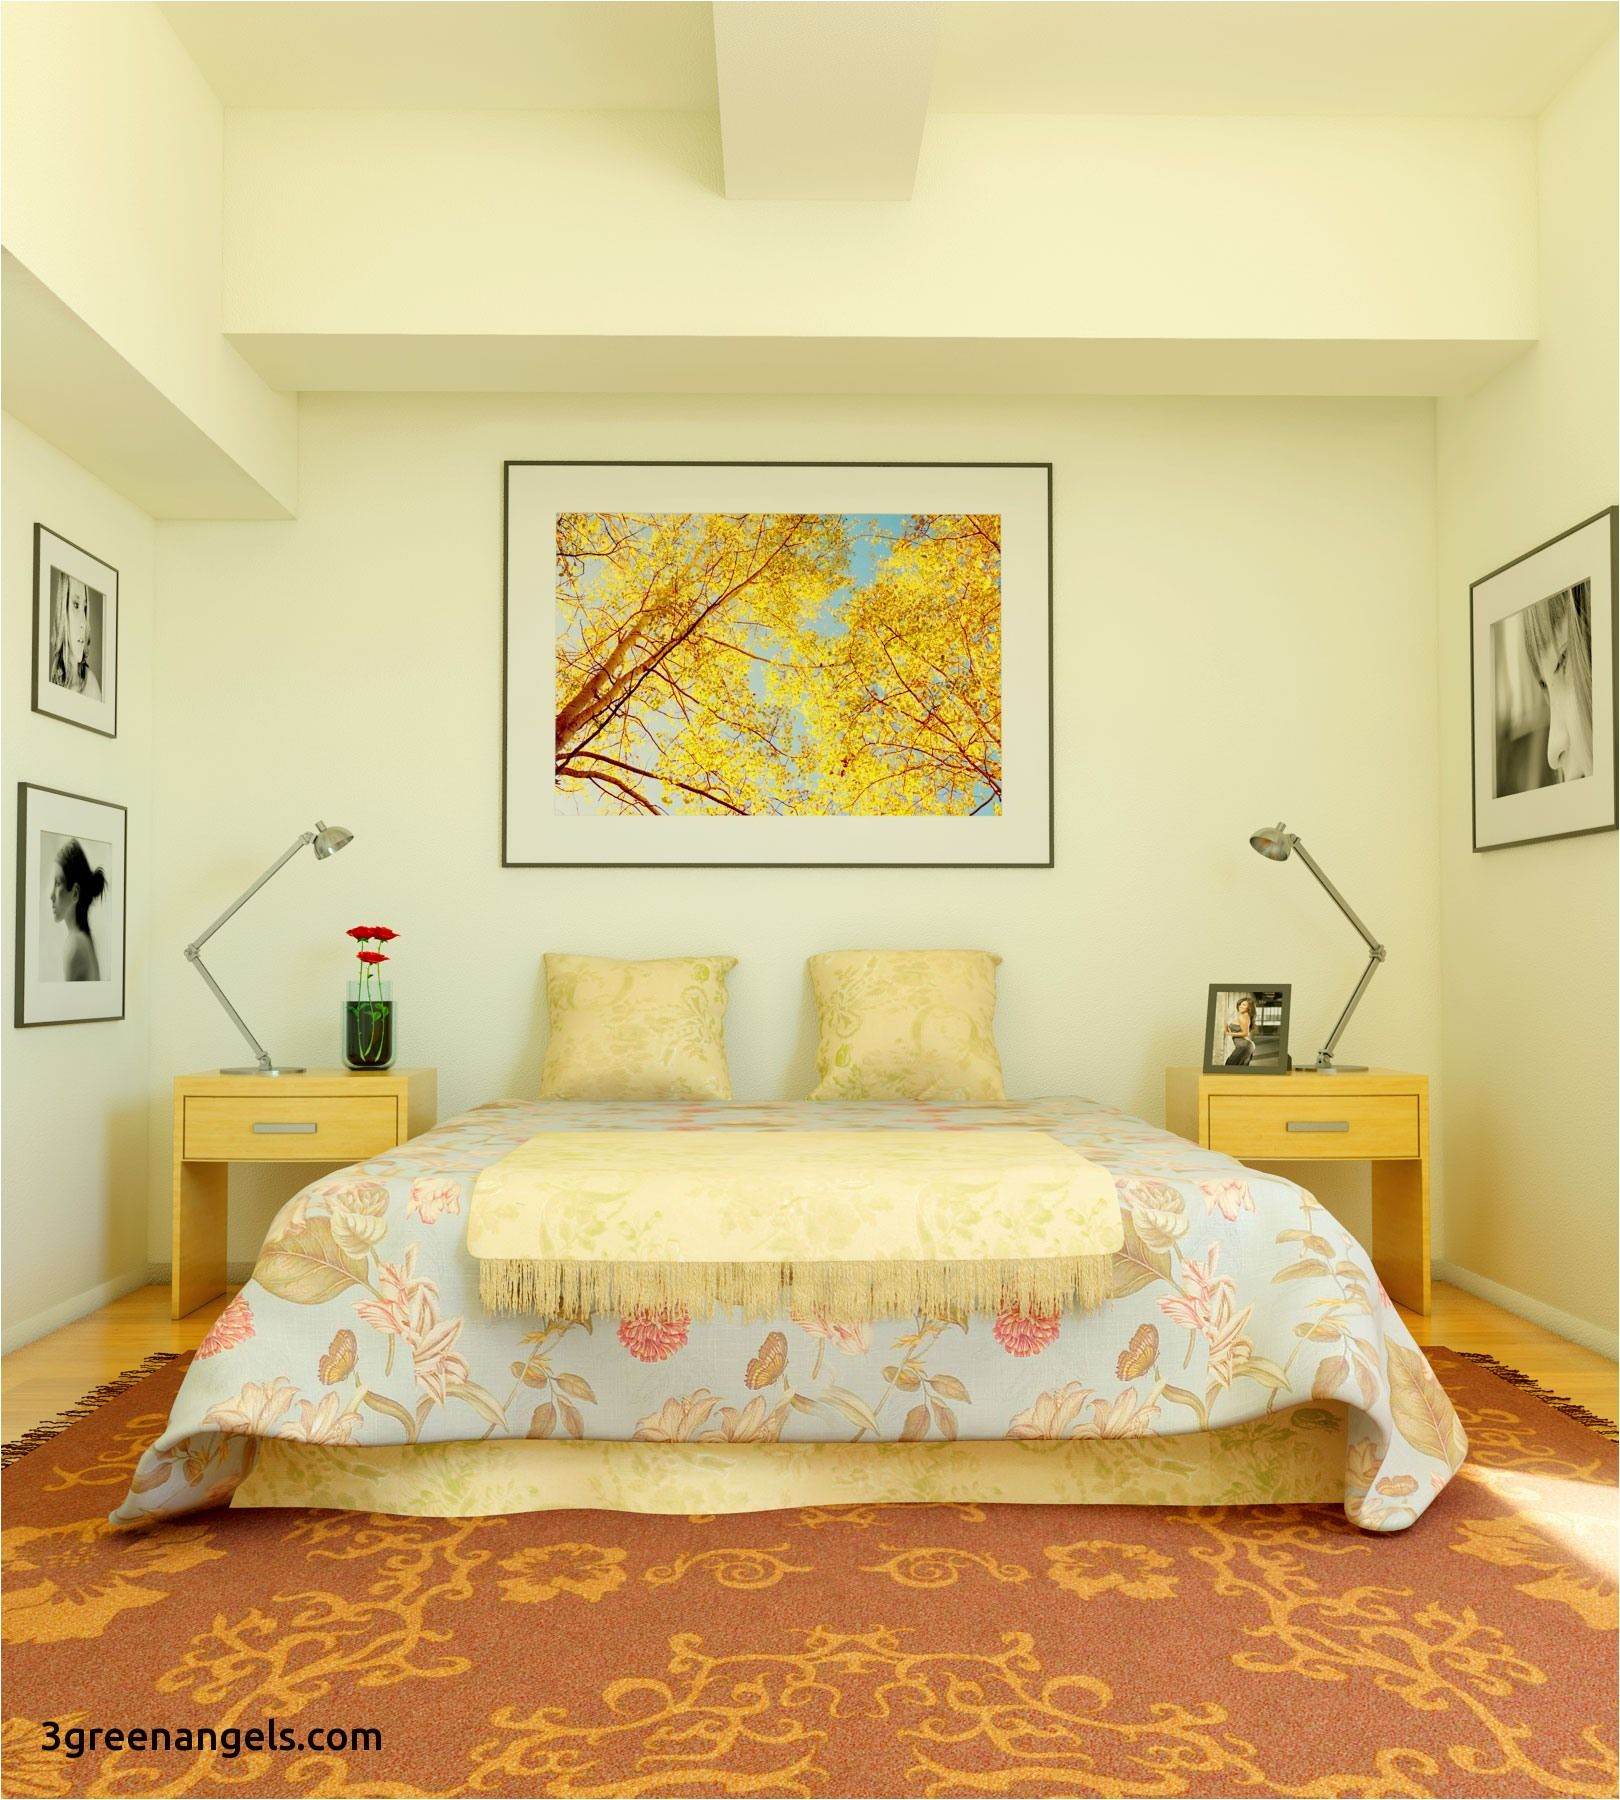 Wall Designs for Bedroom - http://3greenangels.com/wall-designs-for ...